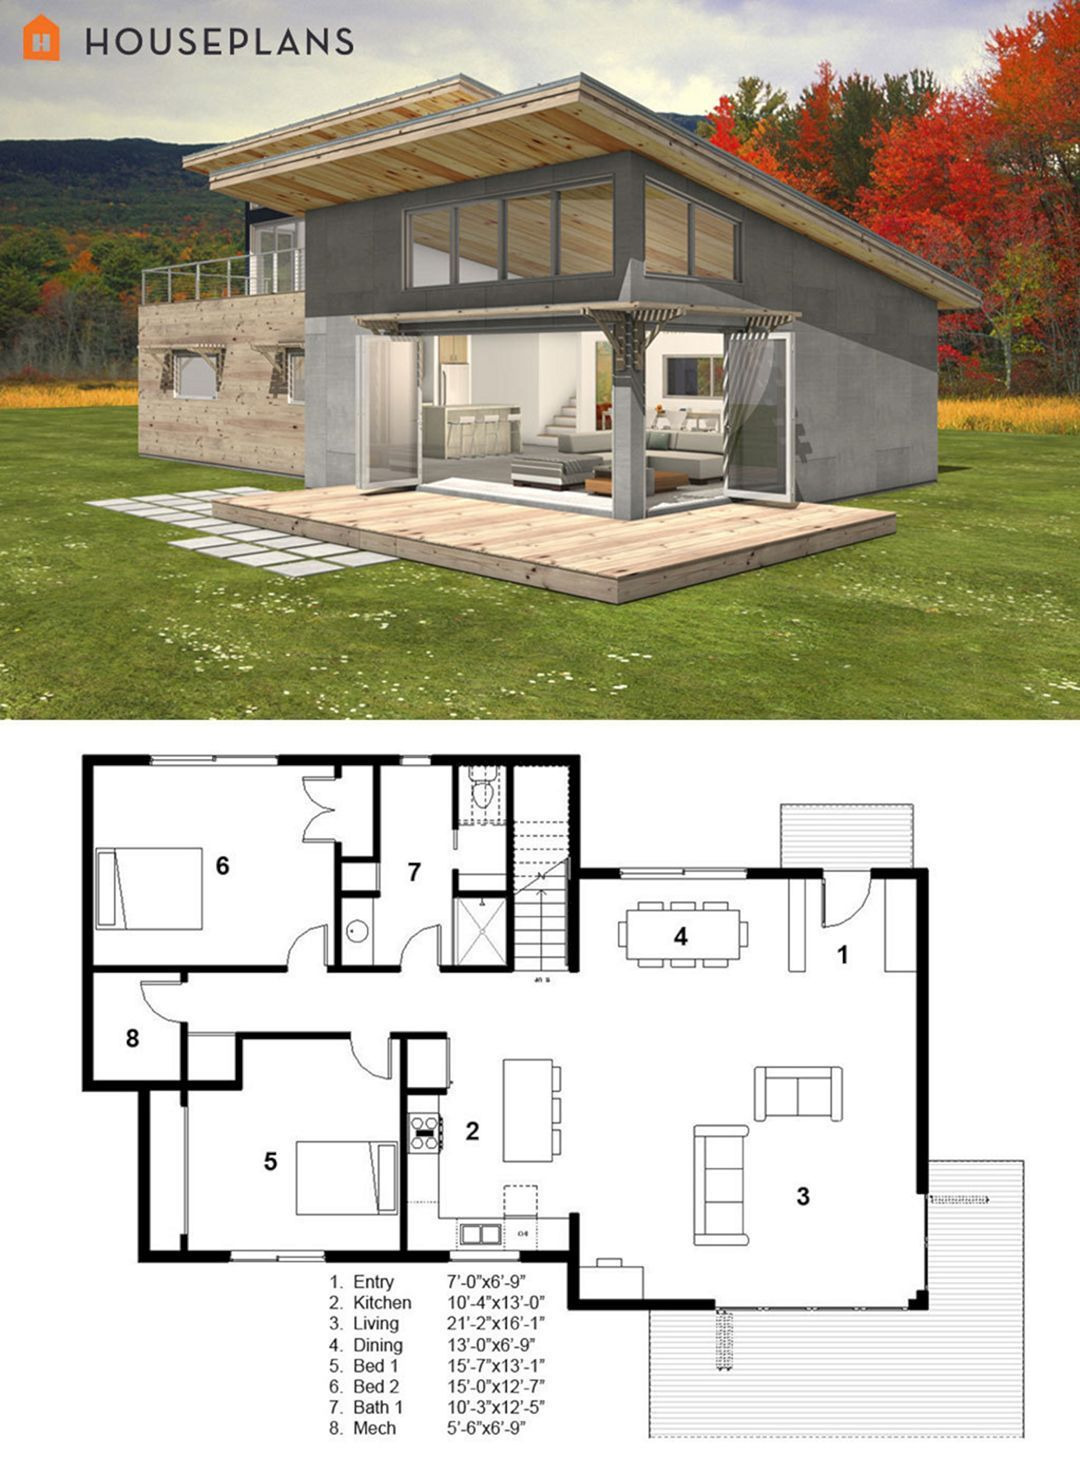 Small Modern House Architect Design Inspirational the Best Modern Tiny House Design Small Homes Inspirations